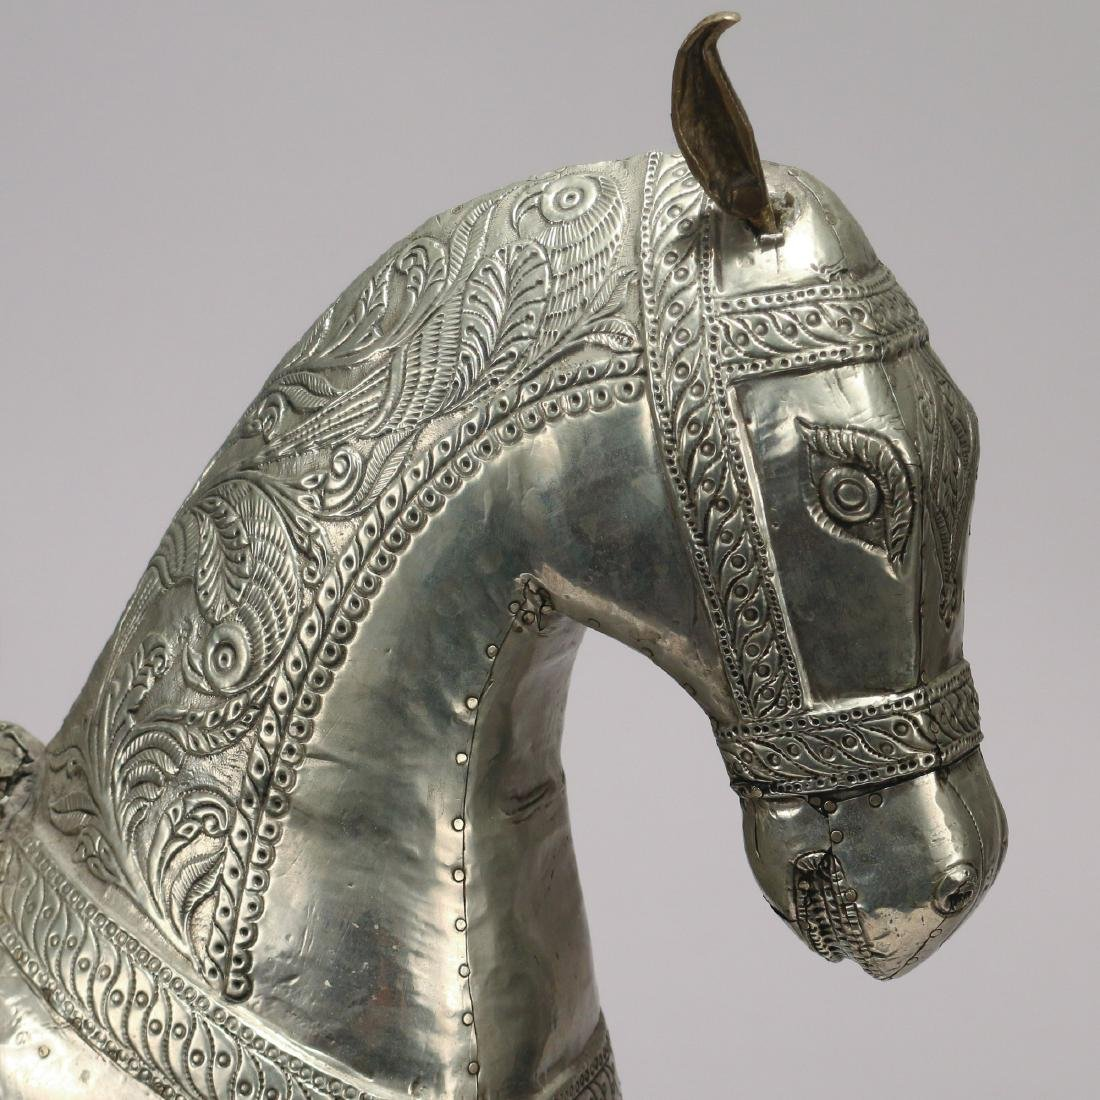 DAMASCUS SILVER FIGURE OF A HORSE - 4